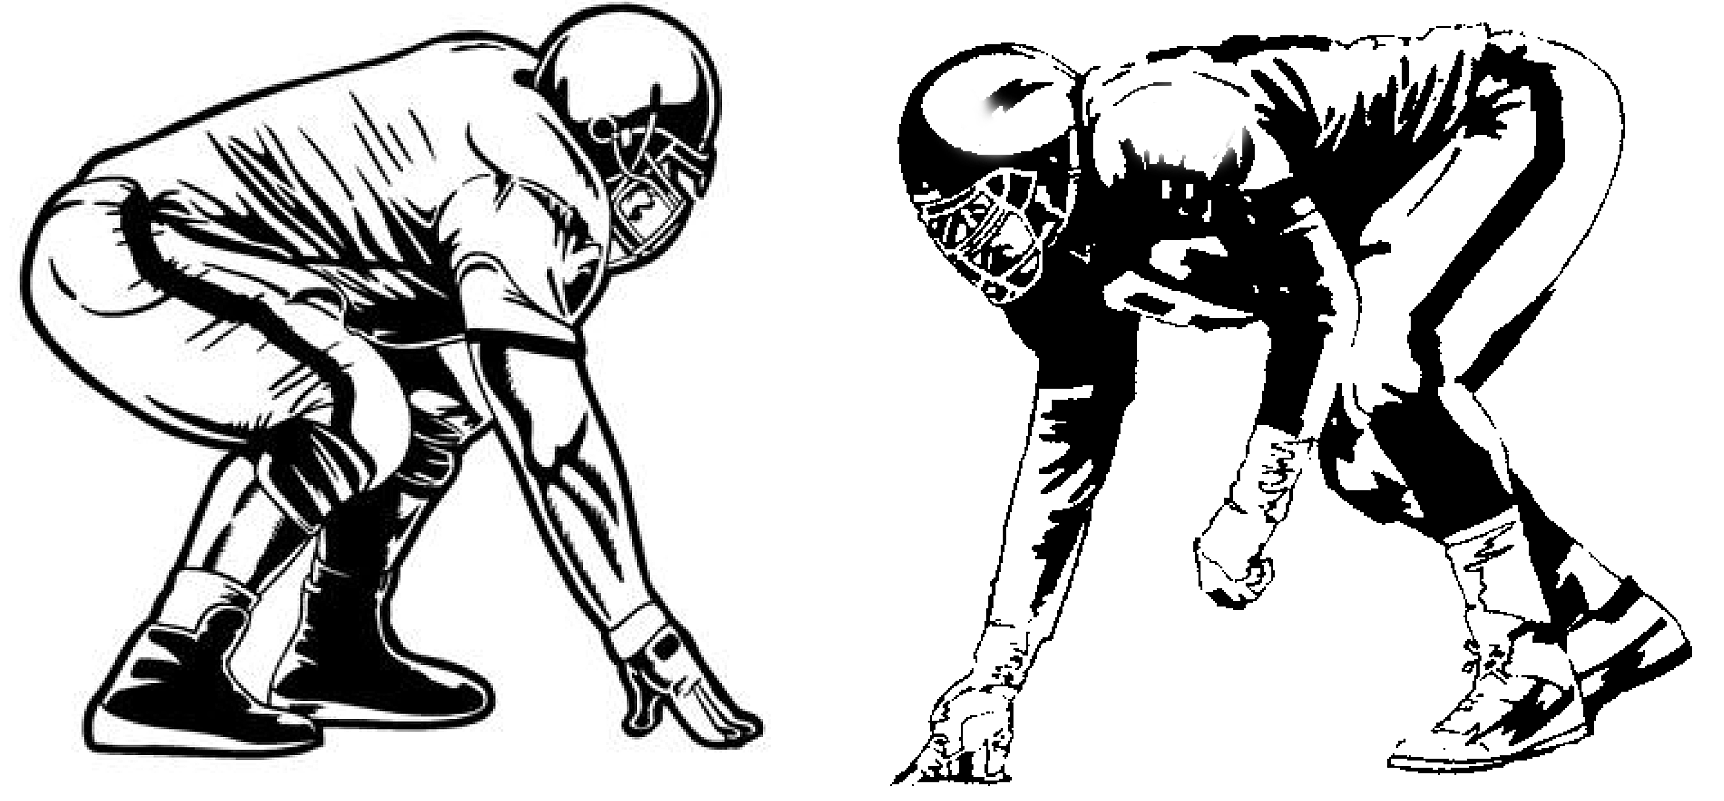 Offensive lineman clipart jpg black and white Football Offensive Lineman Png & Free Football Offensive ... jpg black and white